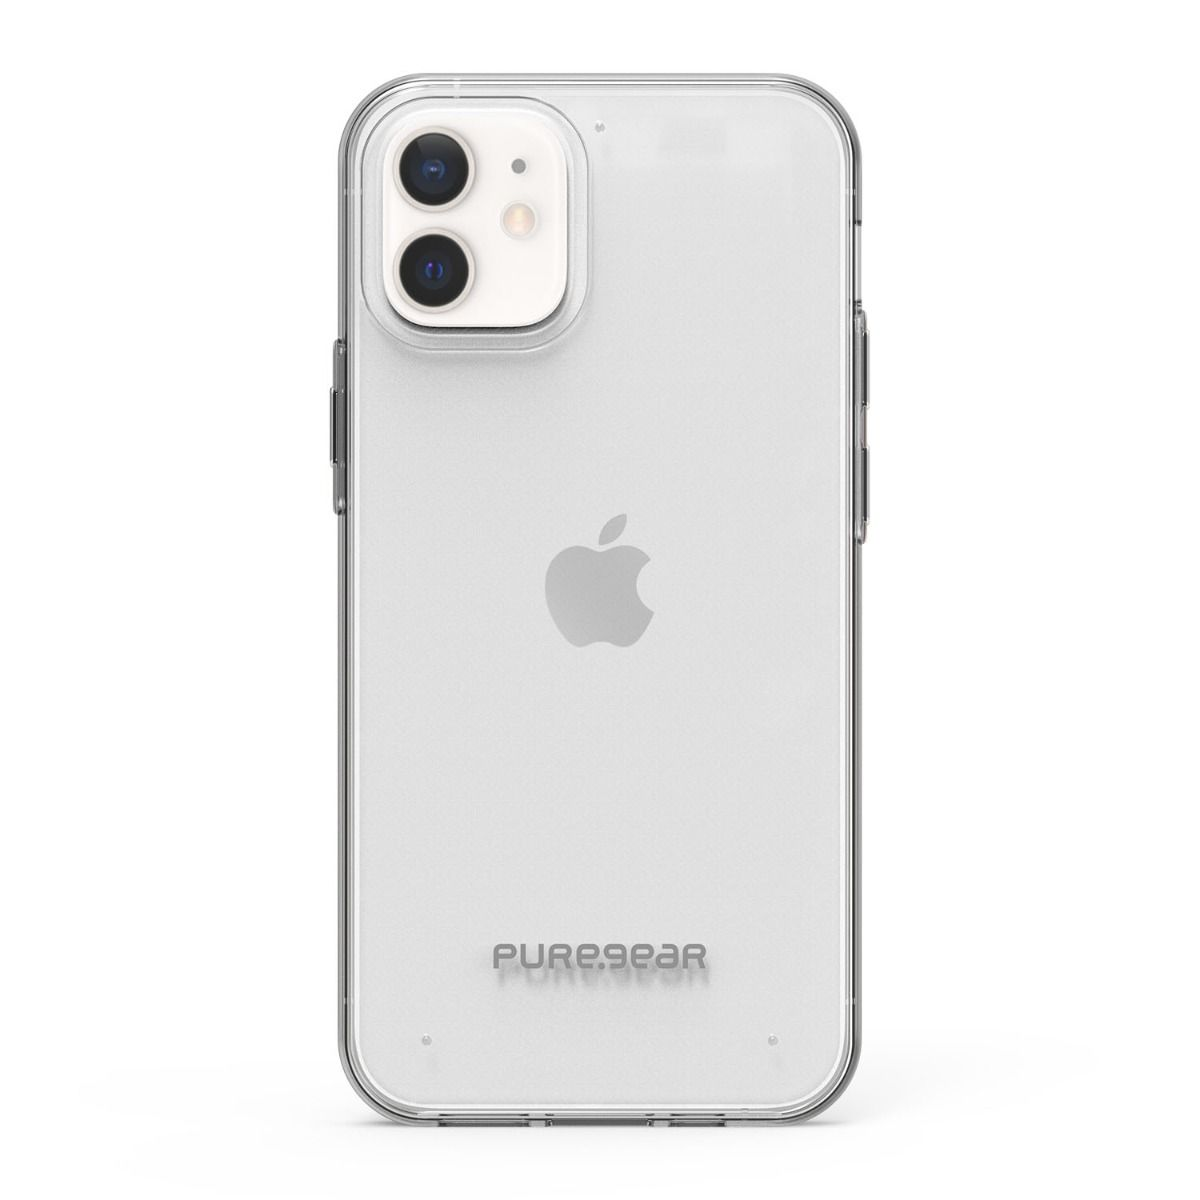 Apple iPhone 12 mini Slim Shell Case - Clear/Clear